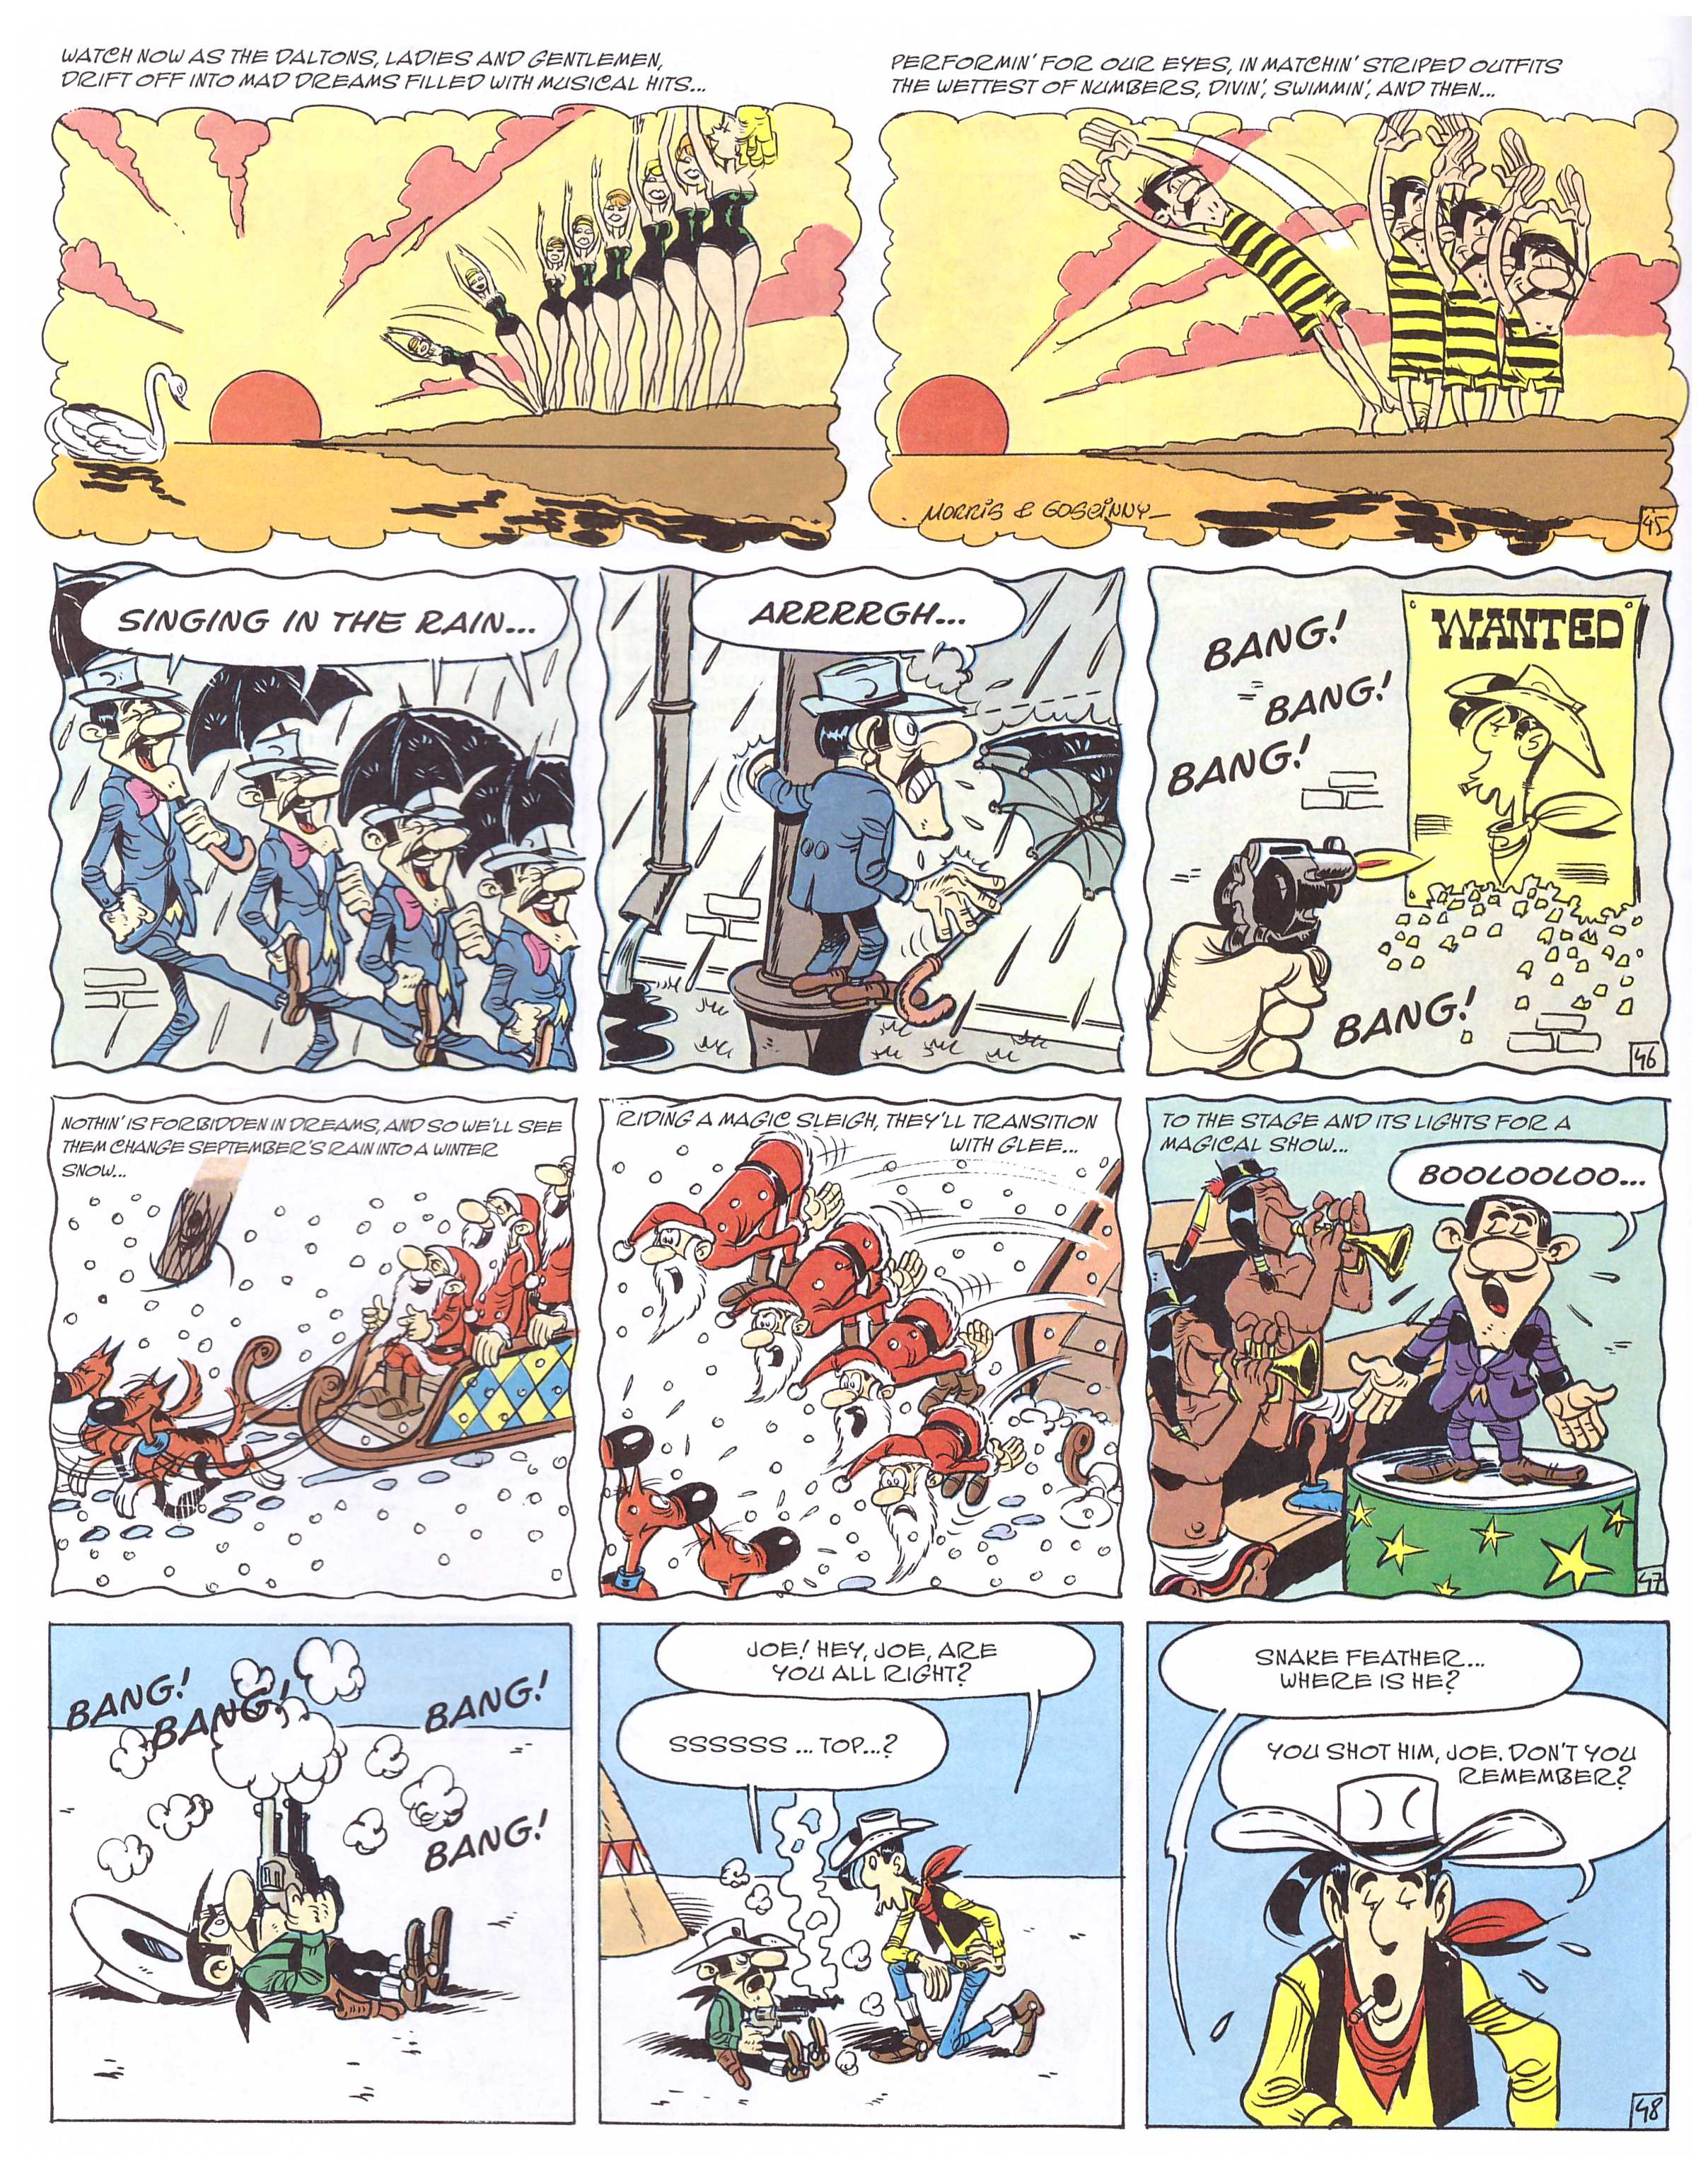 Lucky Luke The Ballad of the Daltons review